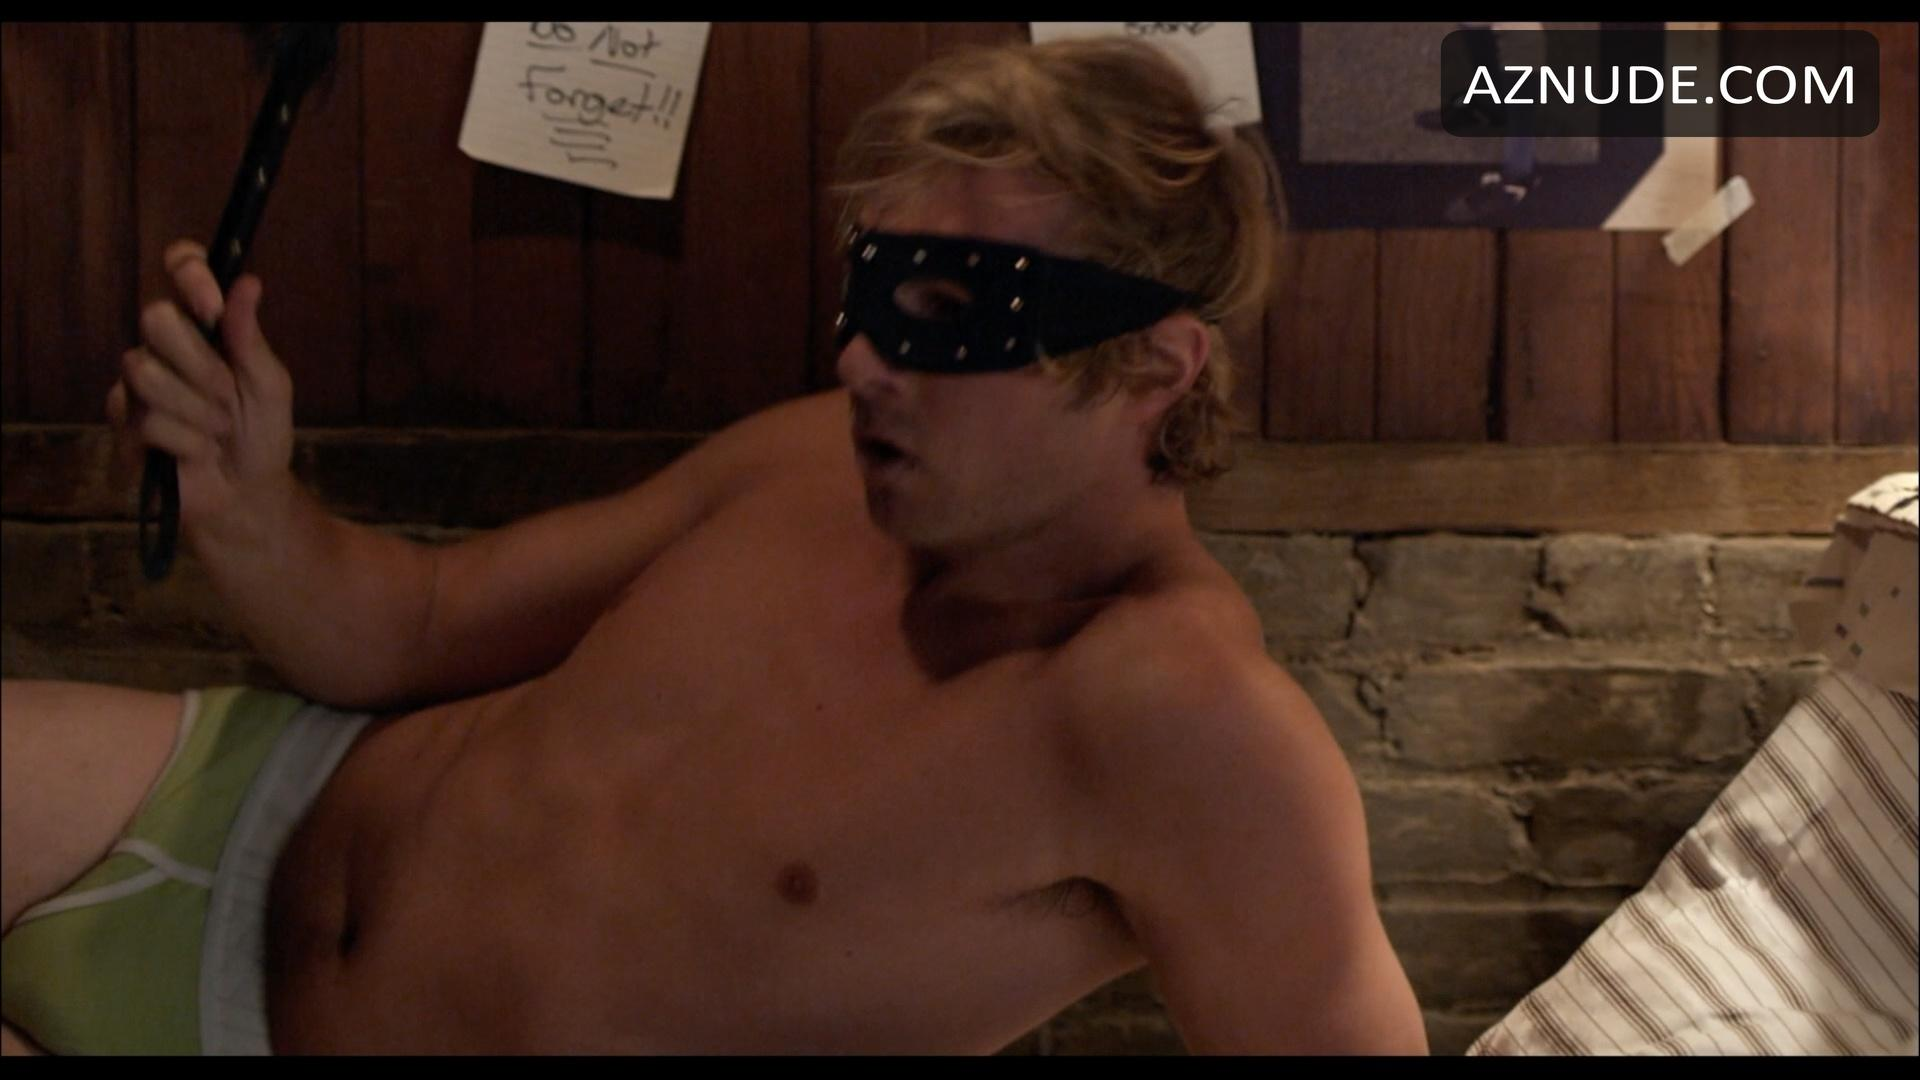 Actor oddgeir thune frontal nude in beforeigners